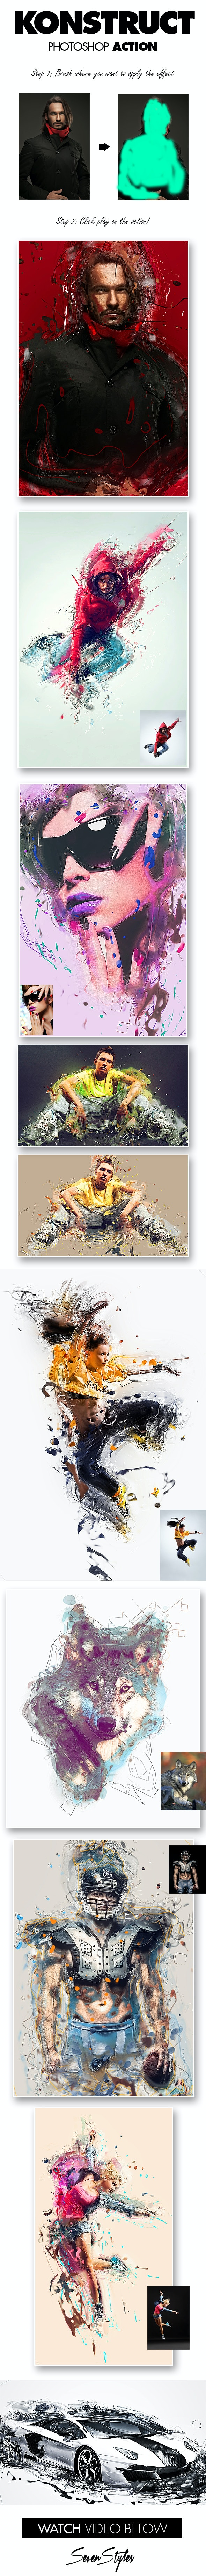 Konstruct Photoshop Action - Photo Effects Actions